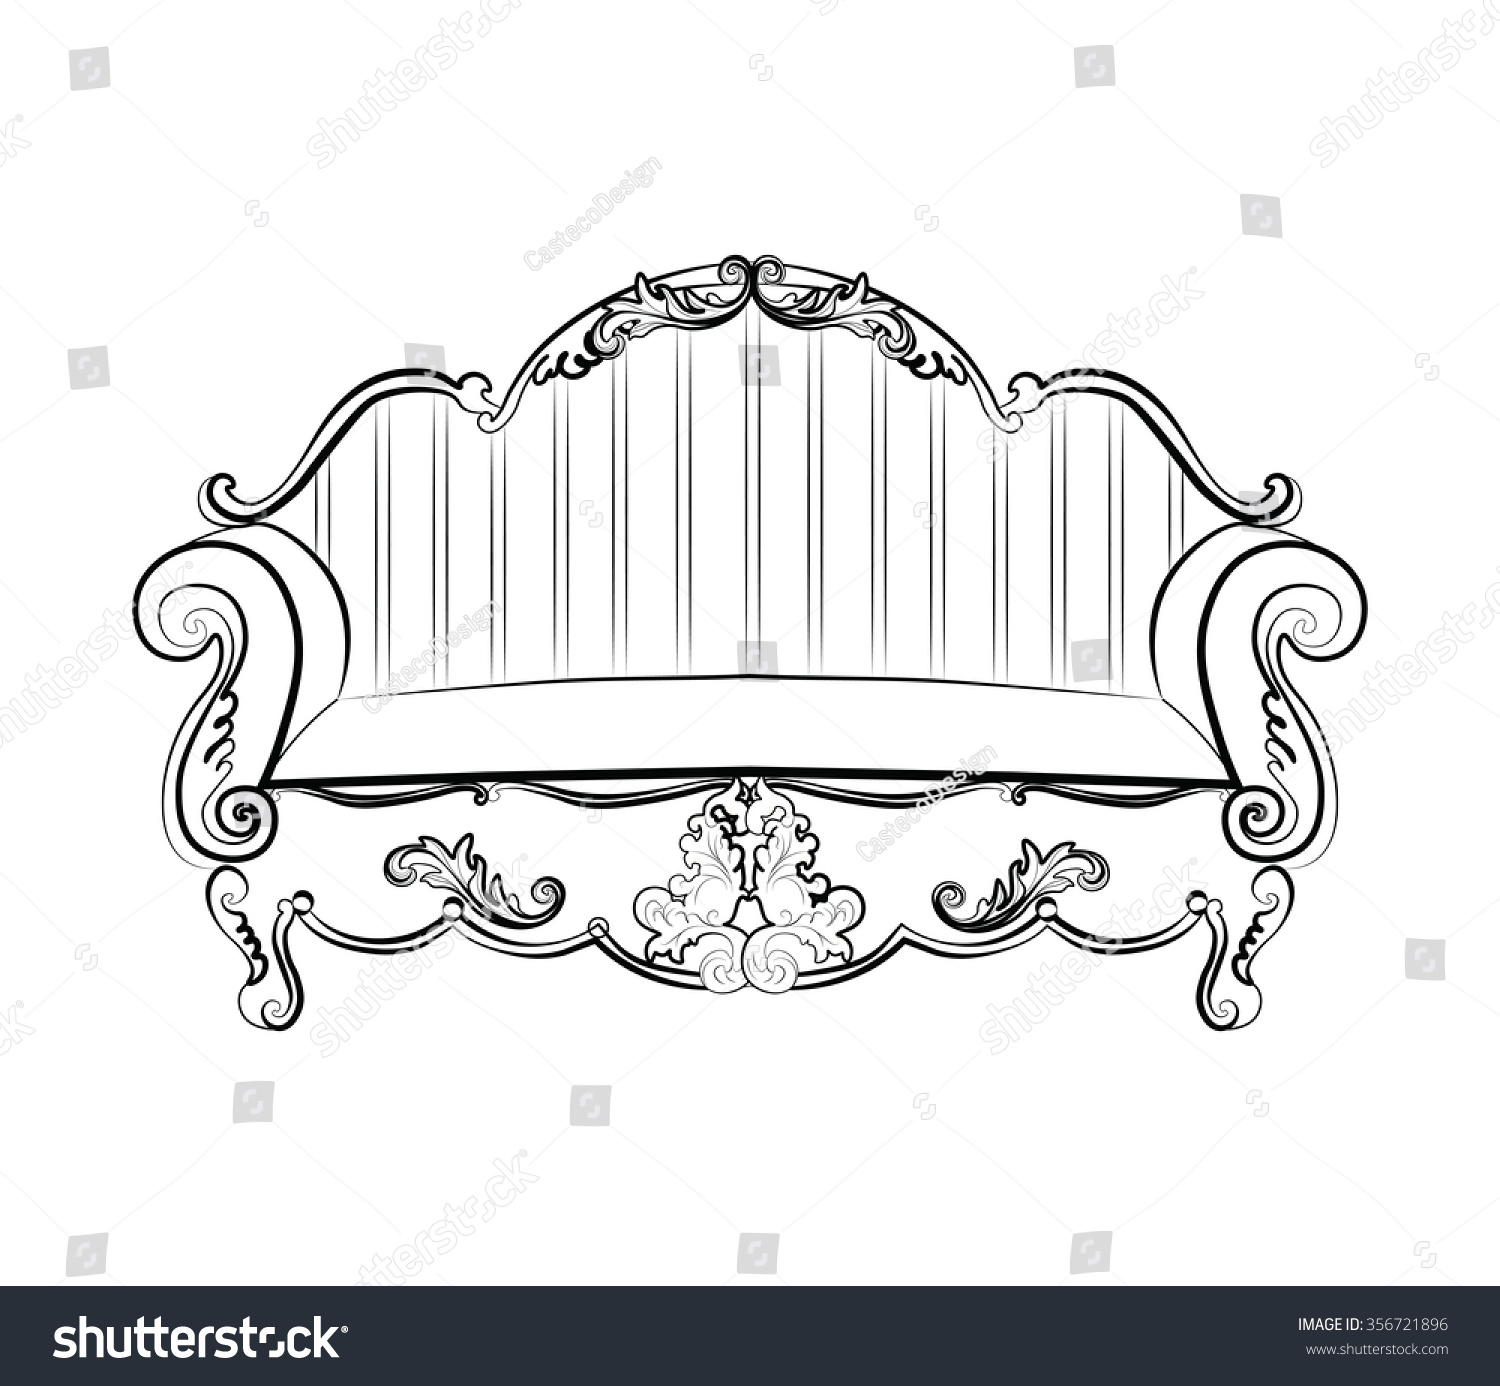 Rococo furniture sketch - Imperial Royal Sofa With Classic Rococo Damask Ornaments Vector Sketch